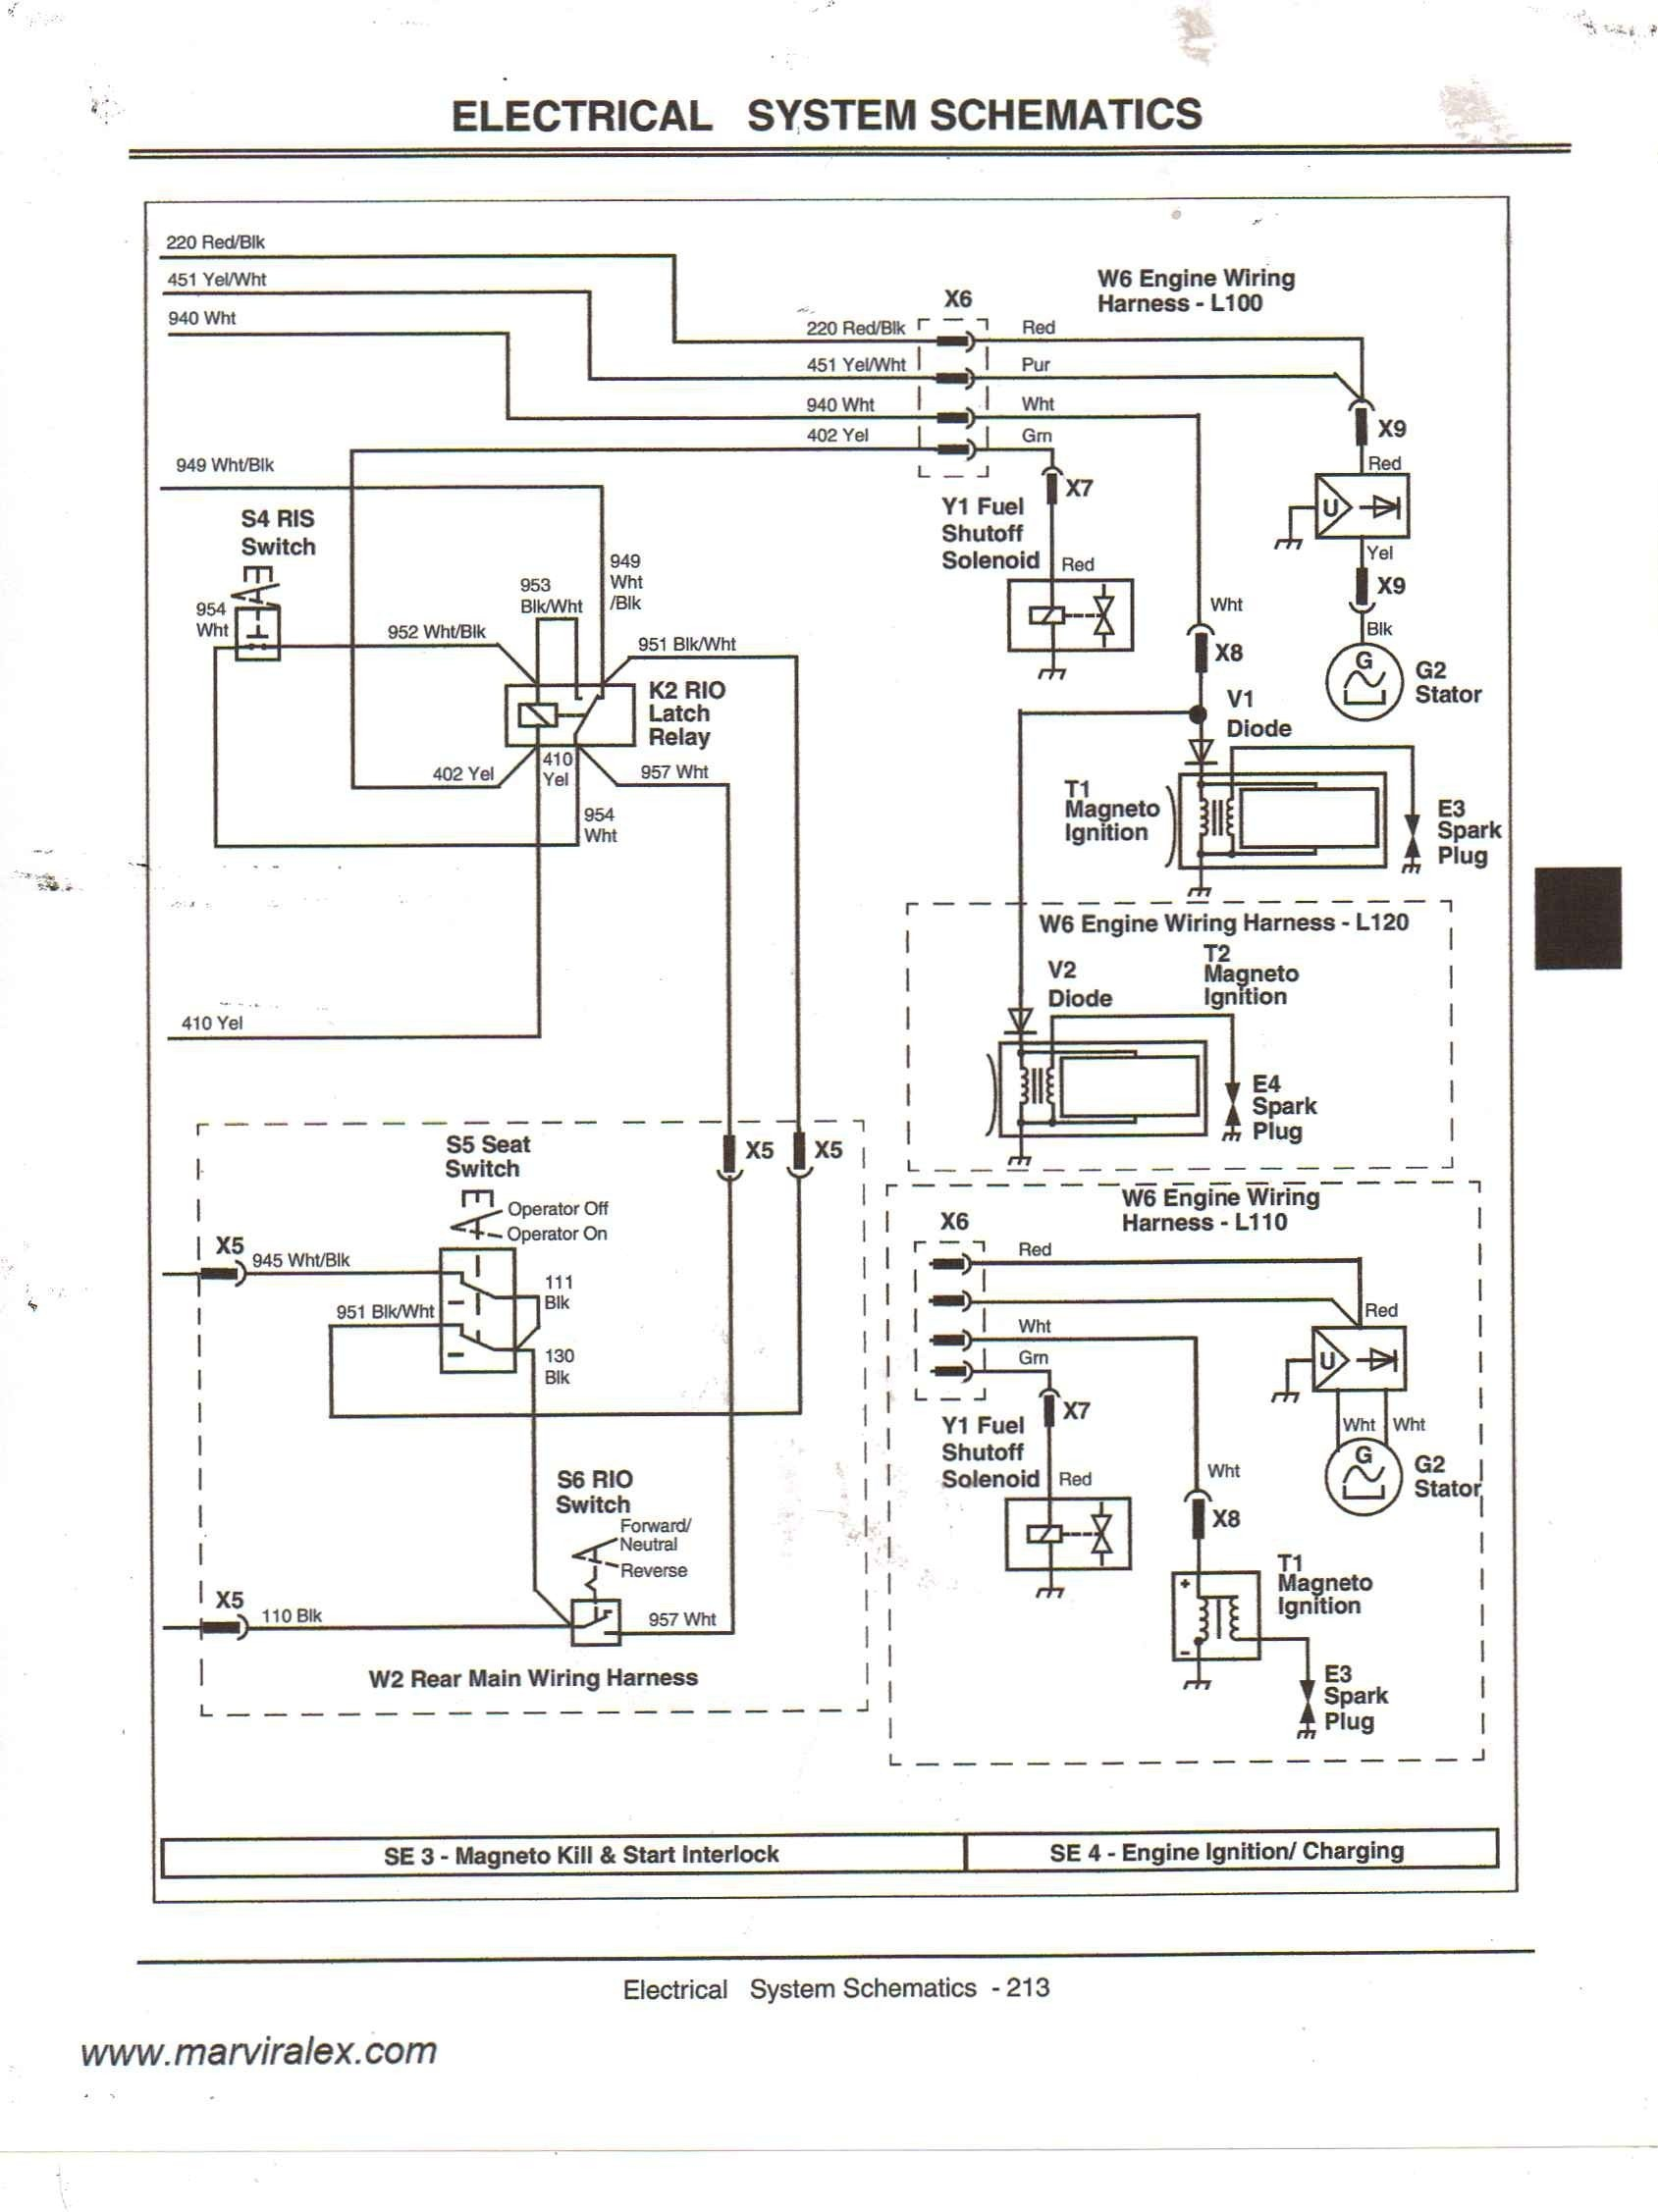 Diagram John Deere X530 Wiring Diagram Full Version Hd Quality Wiring Diagram Digitalwave Molinofllibraga It